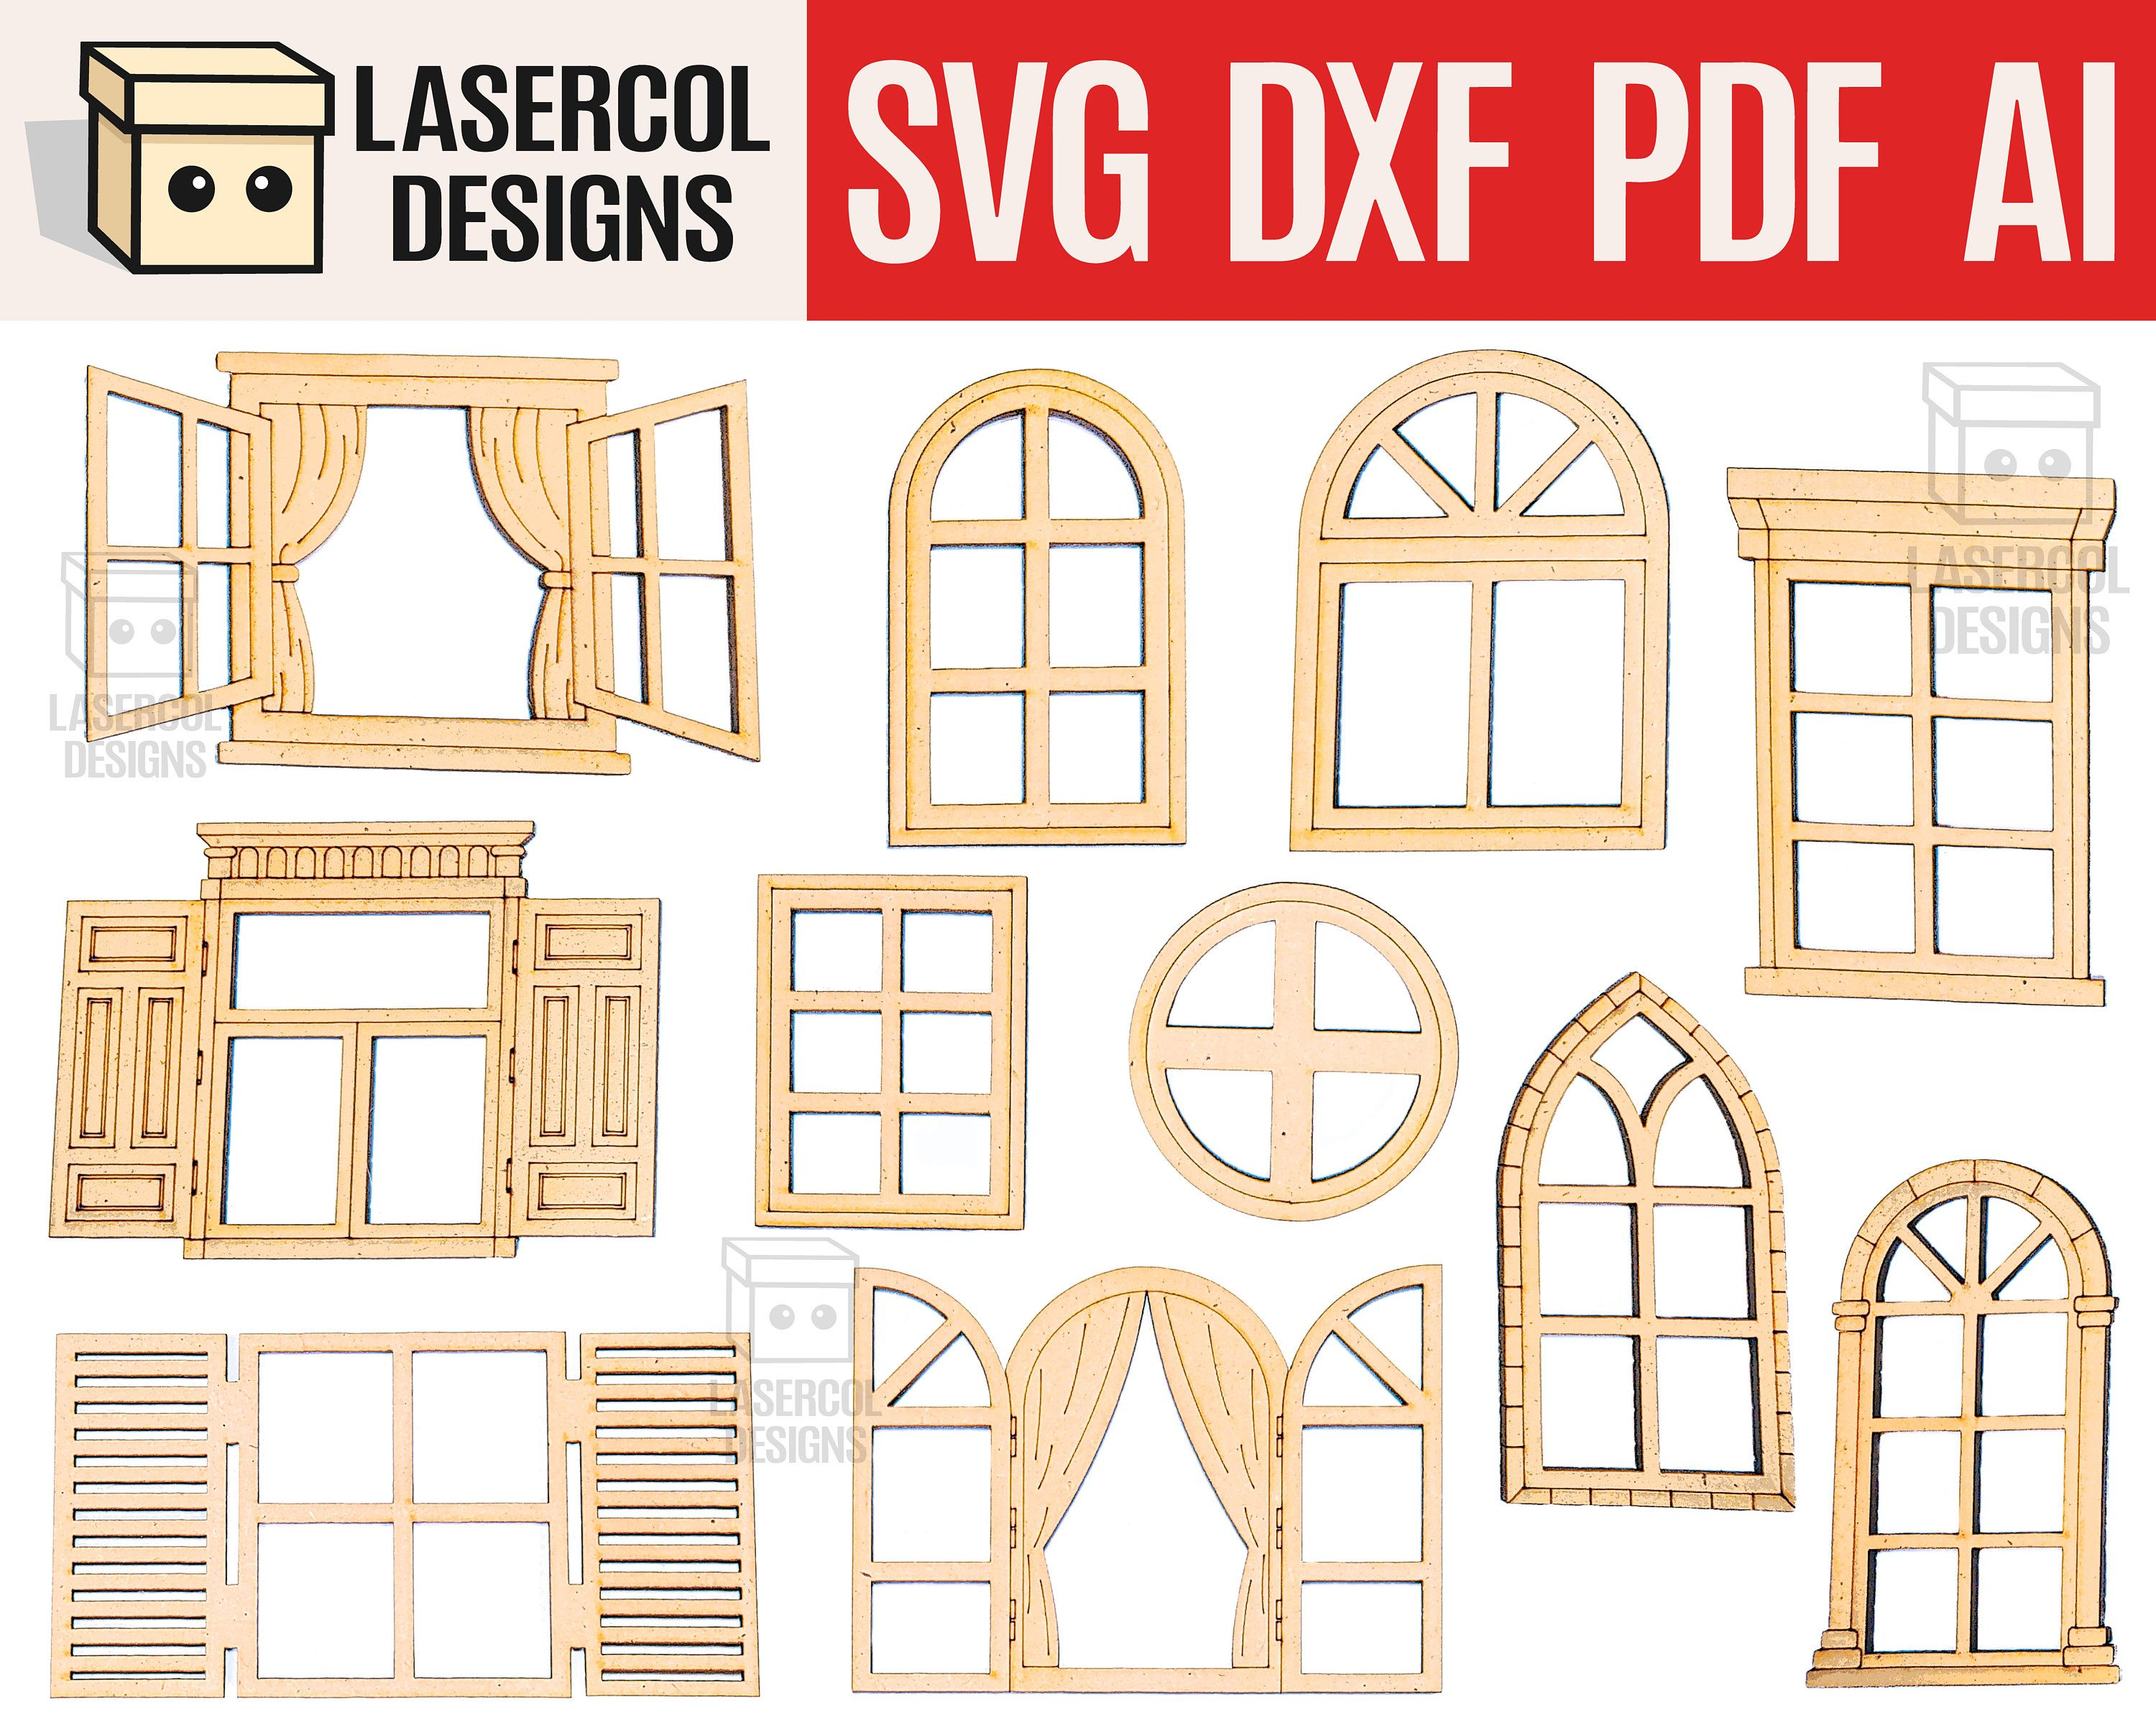 Crib with stairs dollhouse glowforge files DXF Laser cut files SVG laser pattern laser svg laser cut template